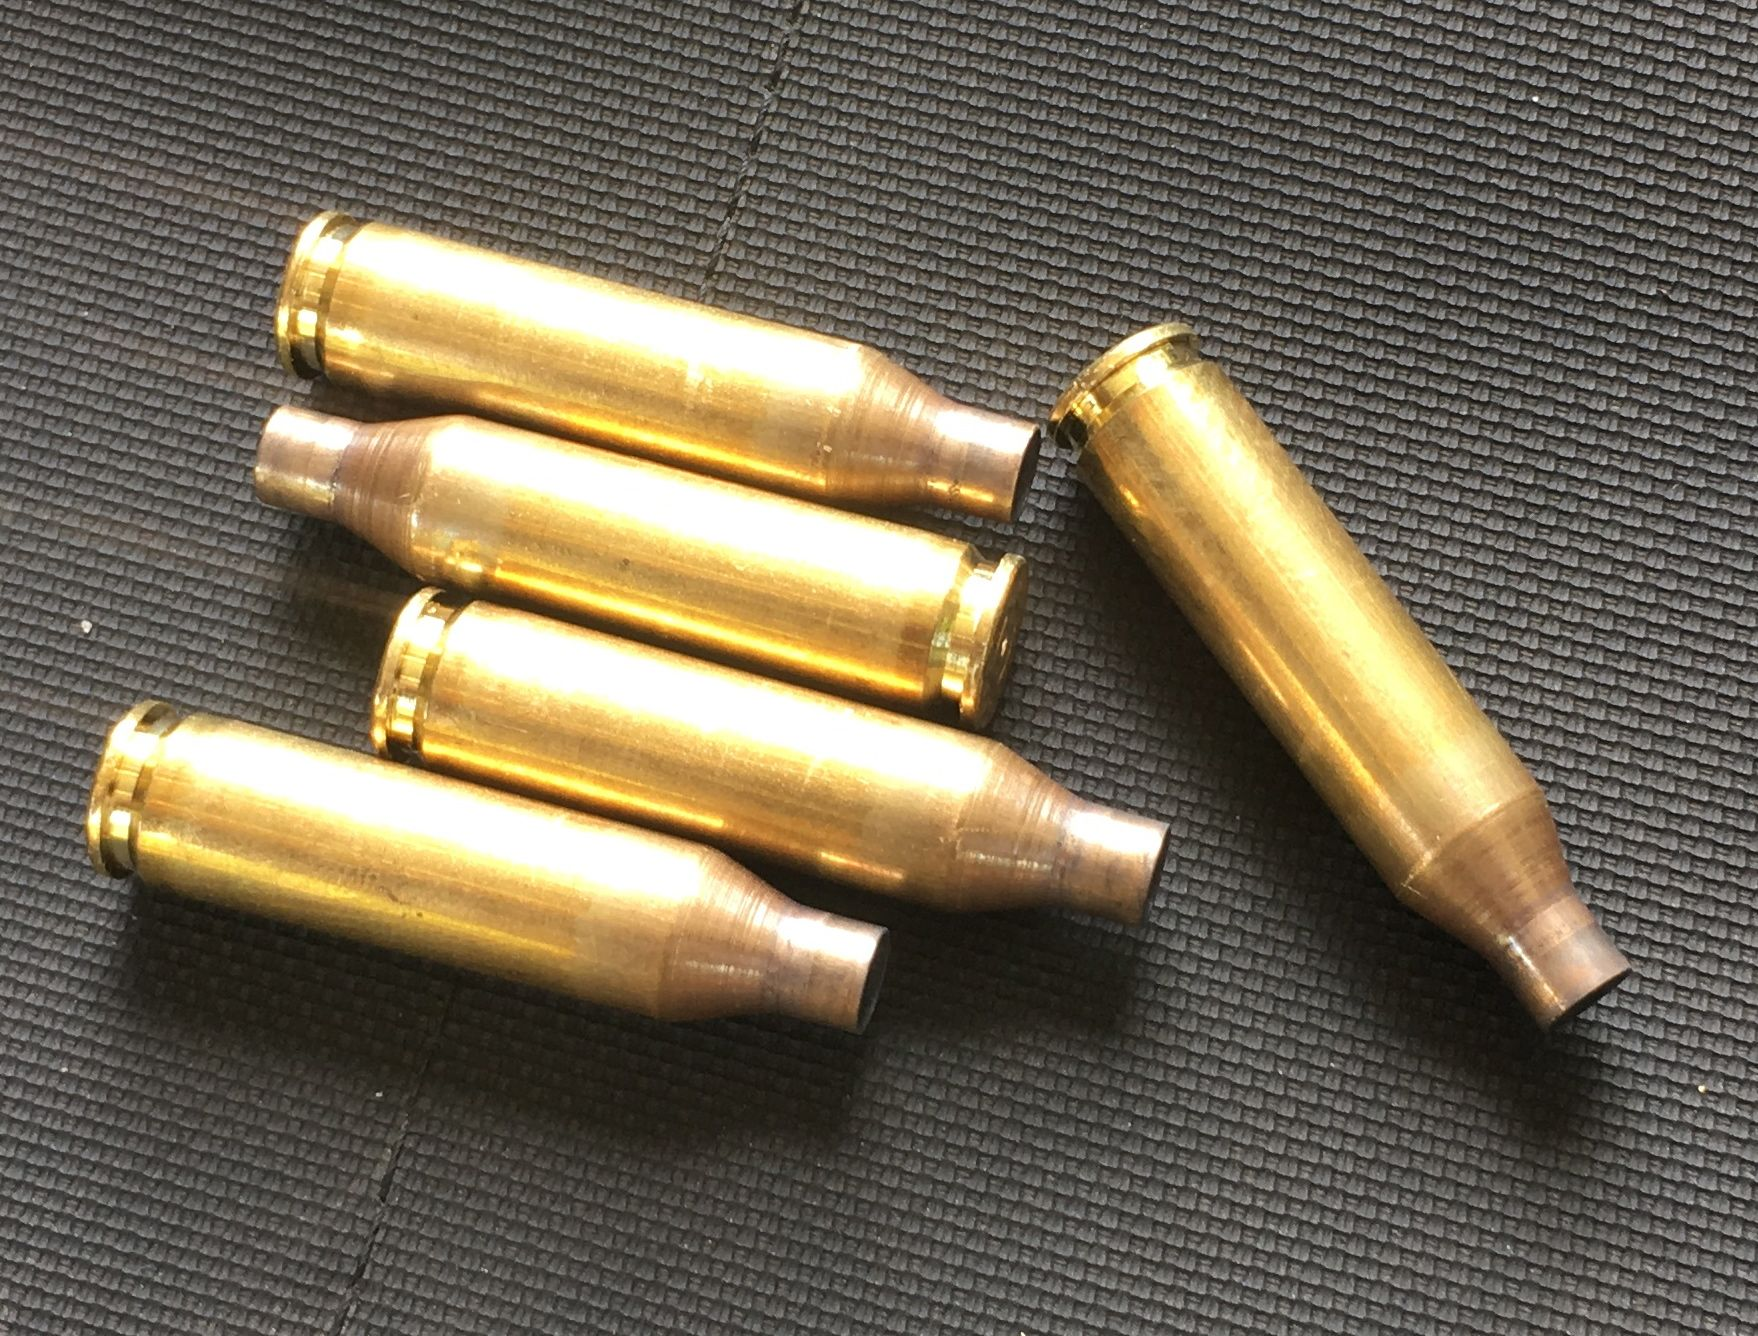 243 Winchester load development: 70 SMK, 95 TMK and 107 SMK